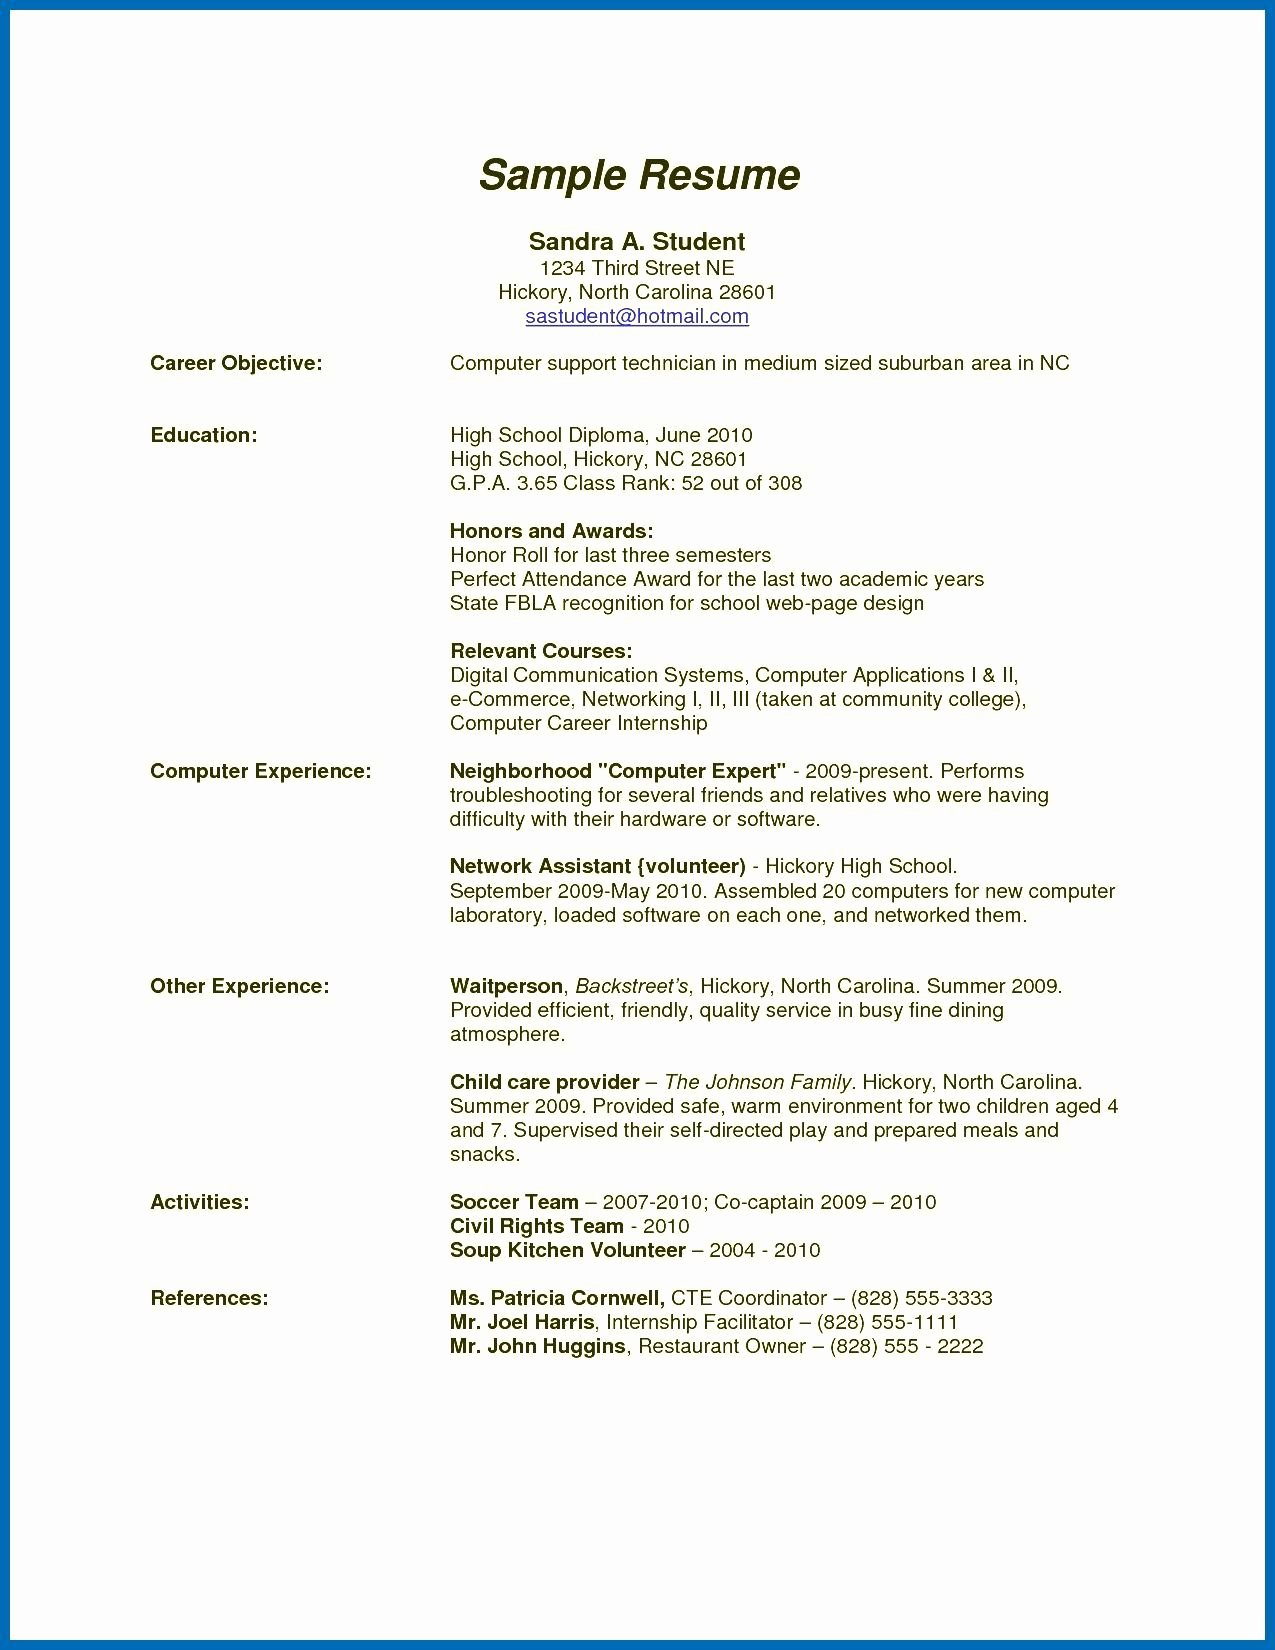 High School Diploma On Resume Awesome How to Write High School Diploma Resume How to Put